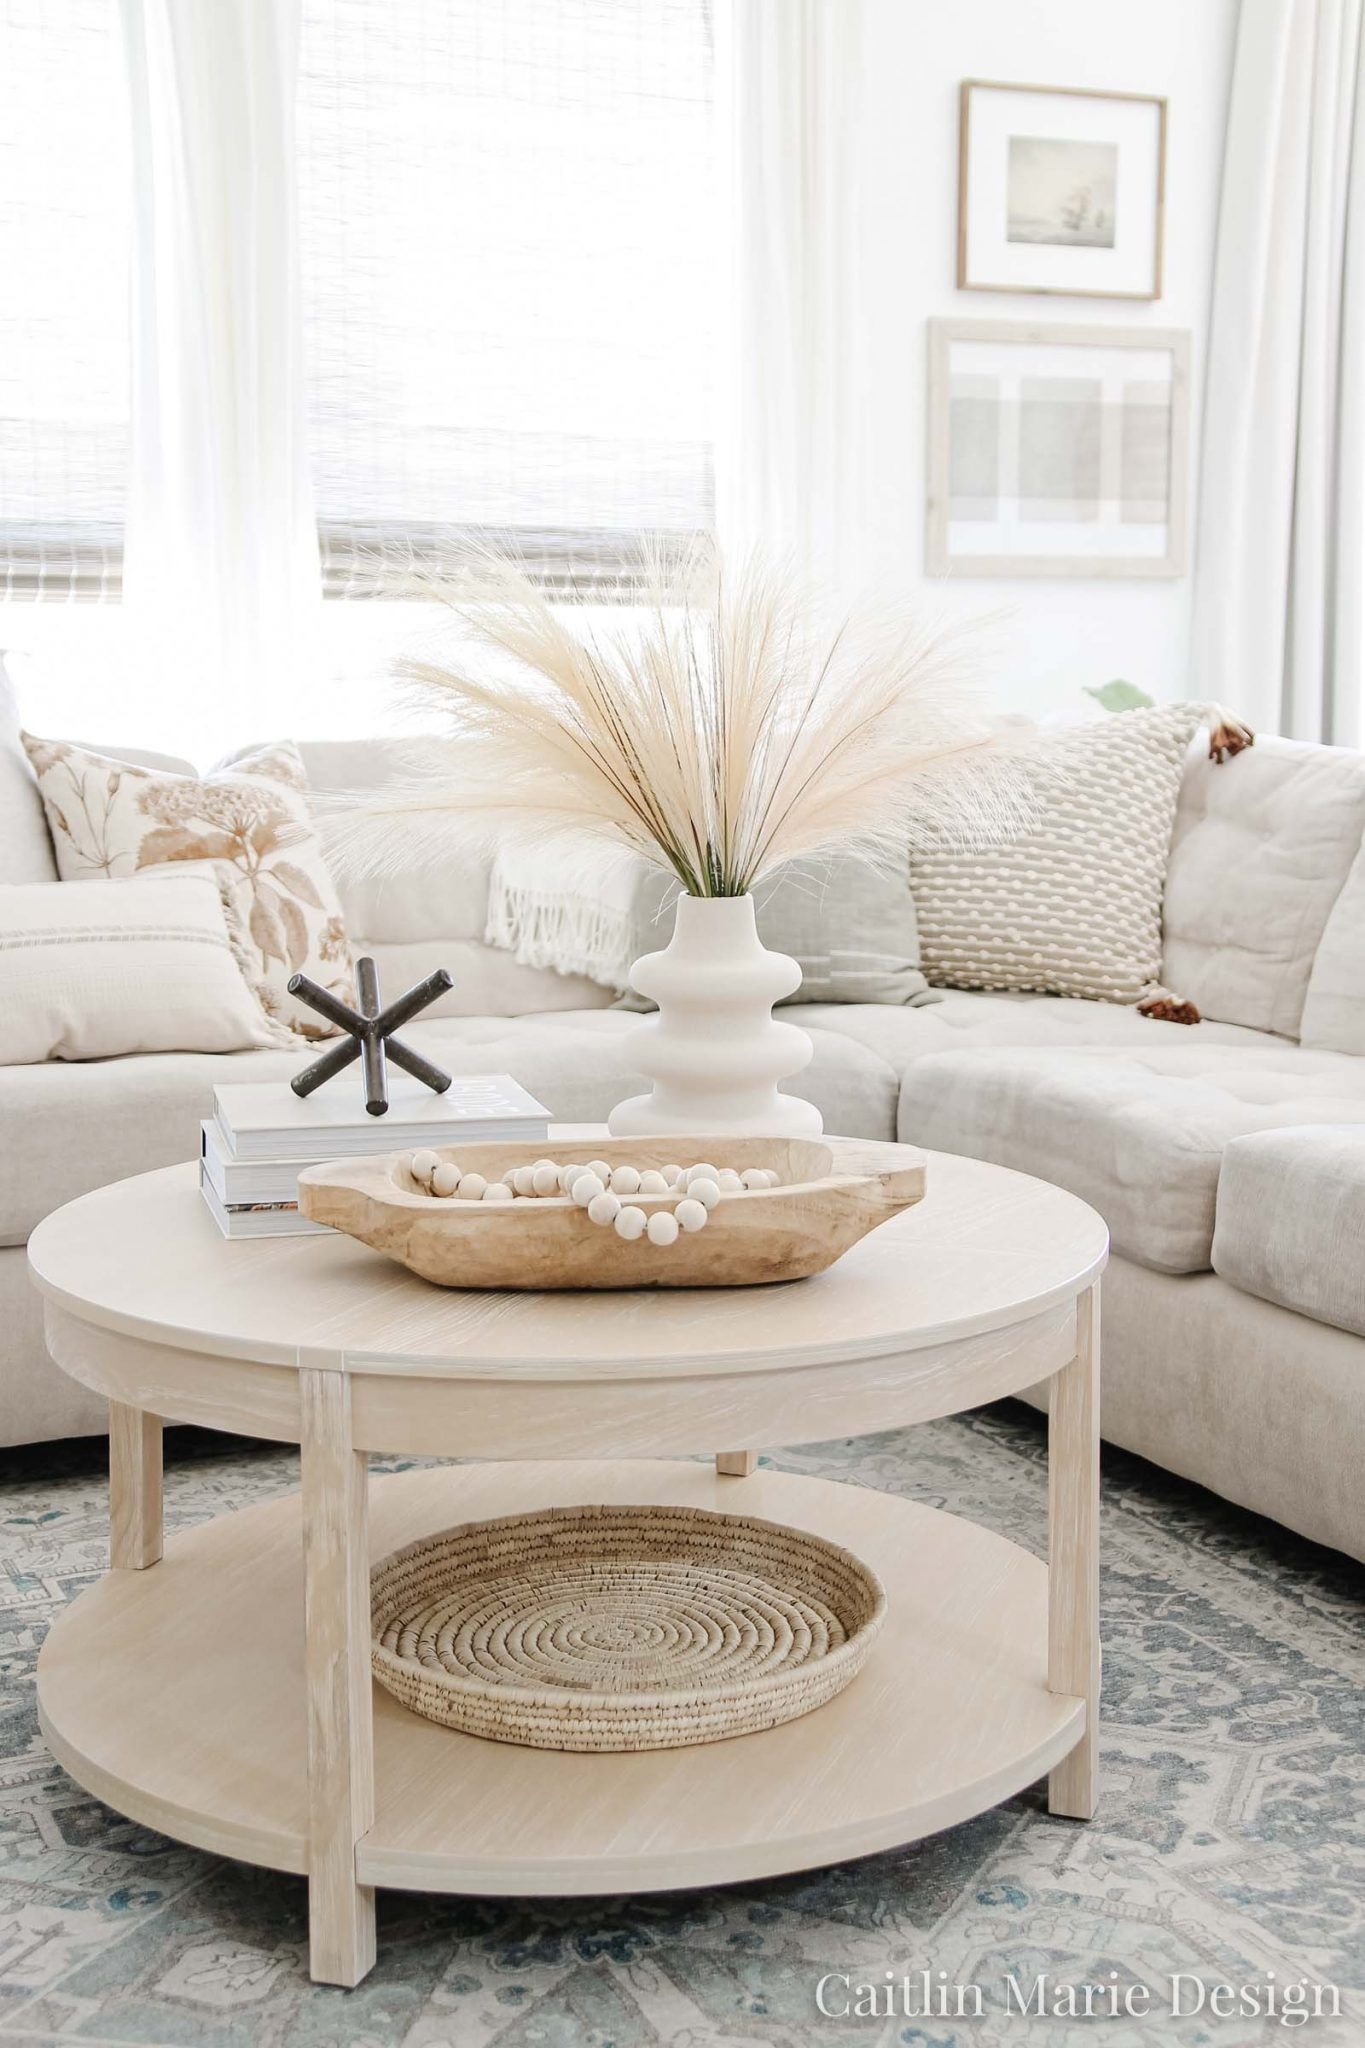 Affordable Coffee Table Round Up All Under 300 Caitlin Marie Design Table Decor Living Room Coffee Table Affordable Coffee Tables [ 2048 x 1365 Pixel ]